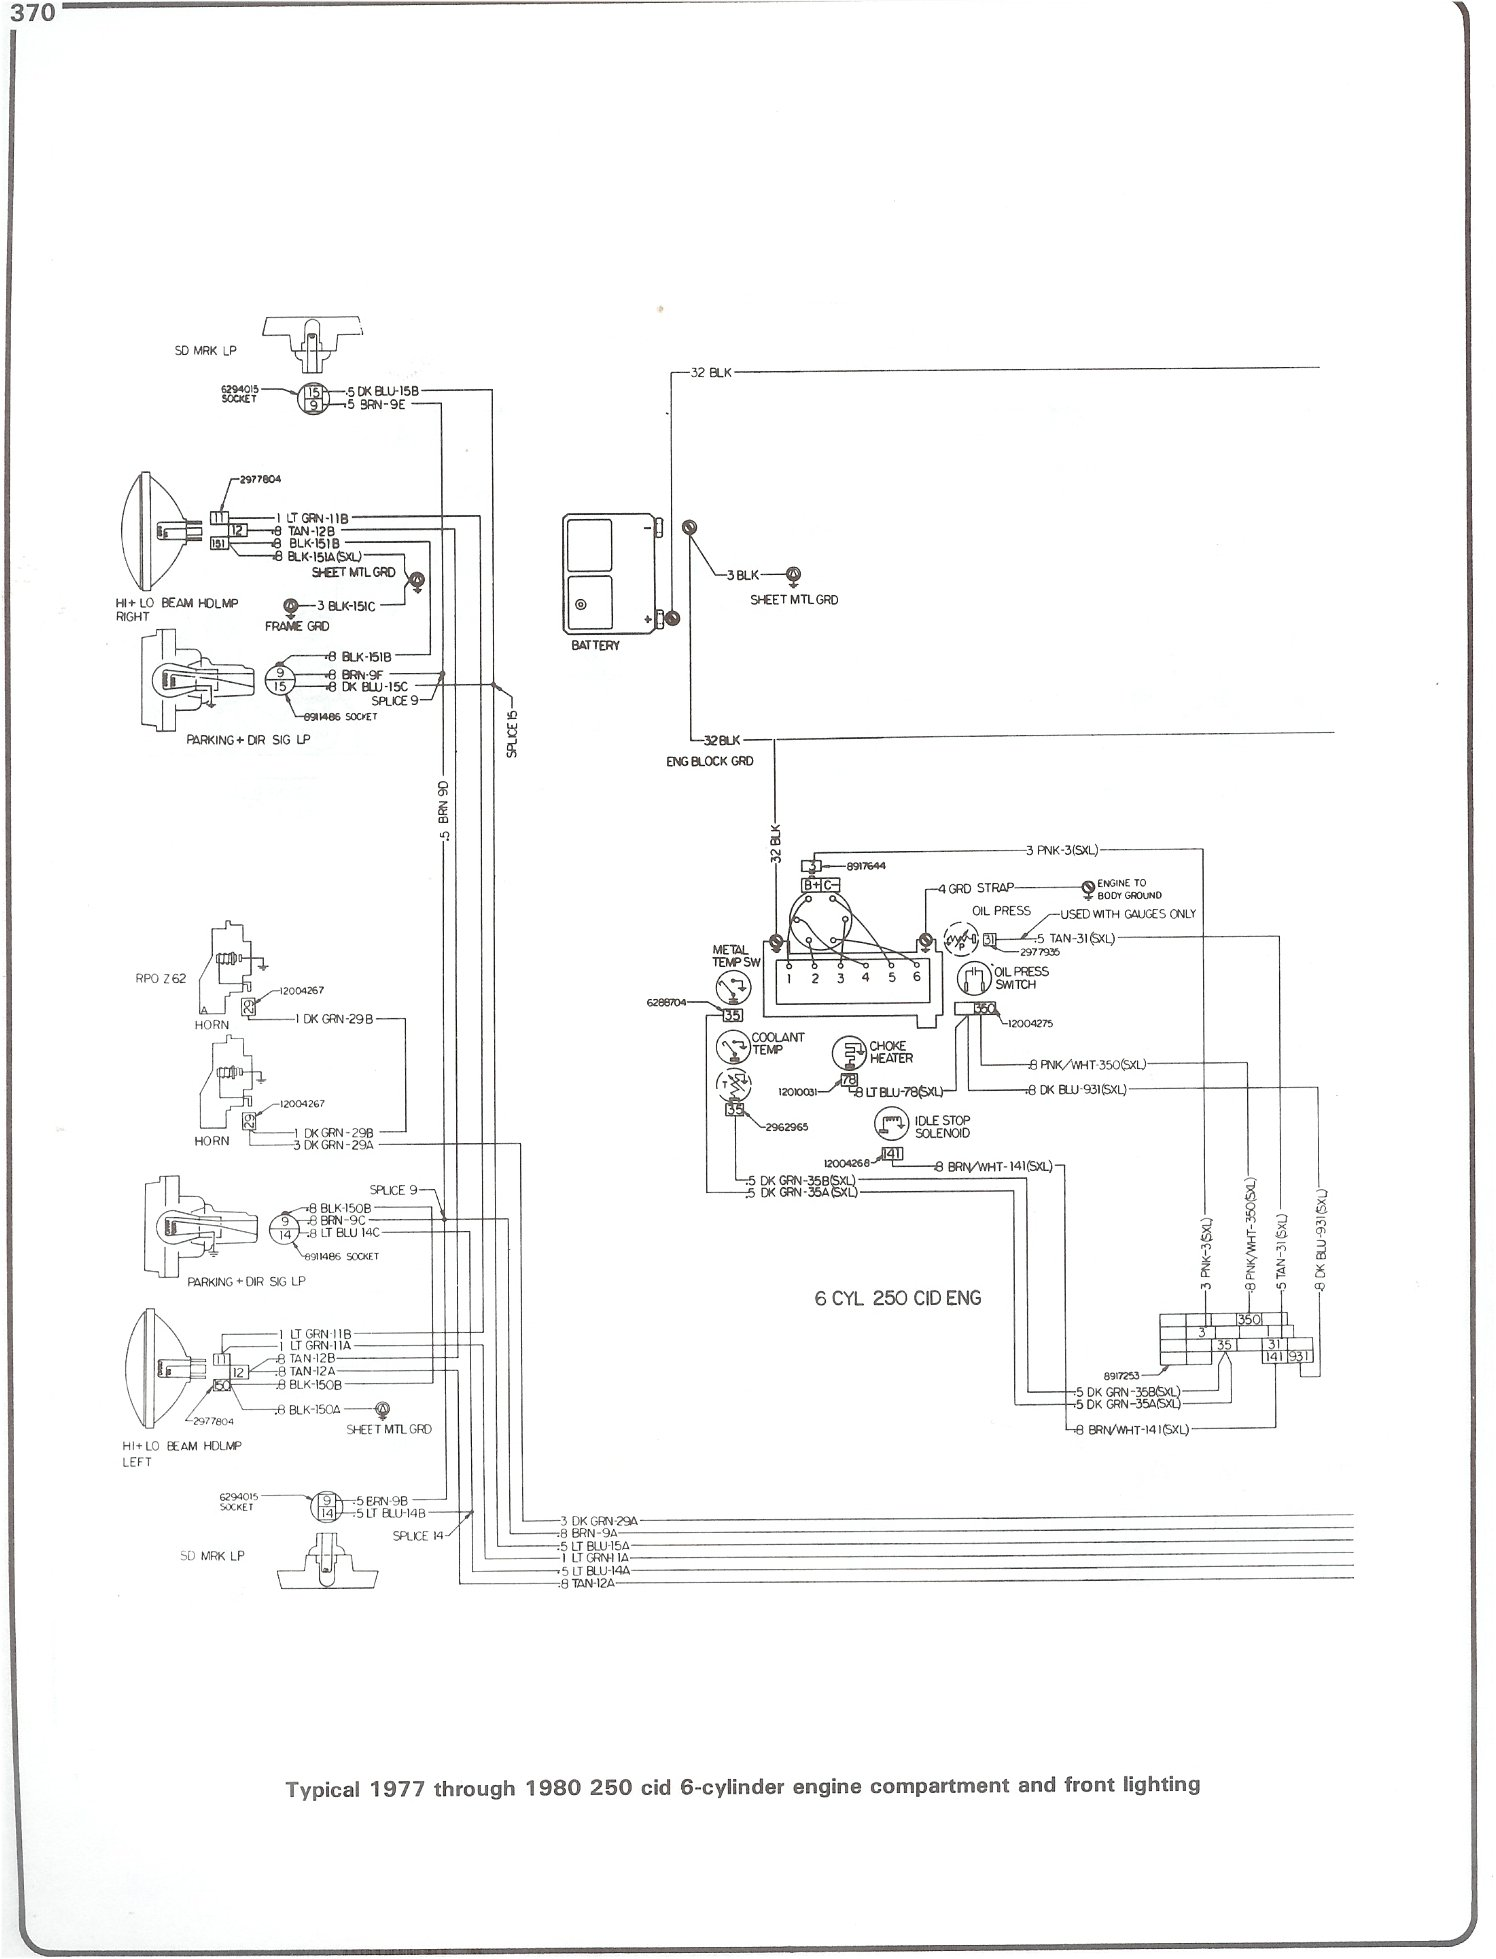 1987 chevy blazer wiring diagram - wiring diagram stale-provider -  stale-provider.networkantidiscriminazione.it  networkantidiscriminazione.it